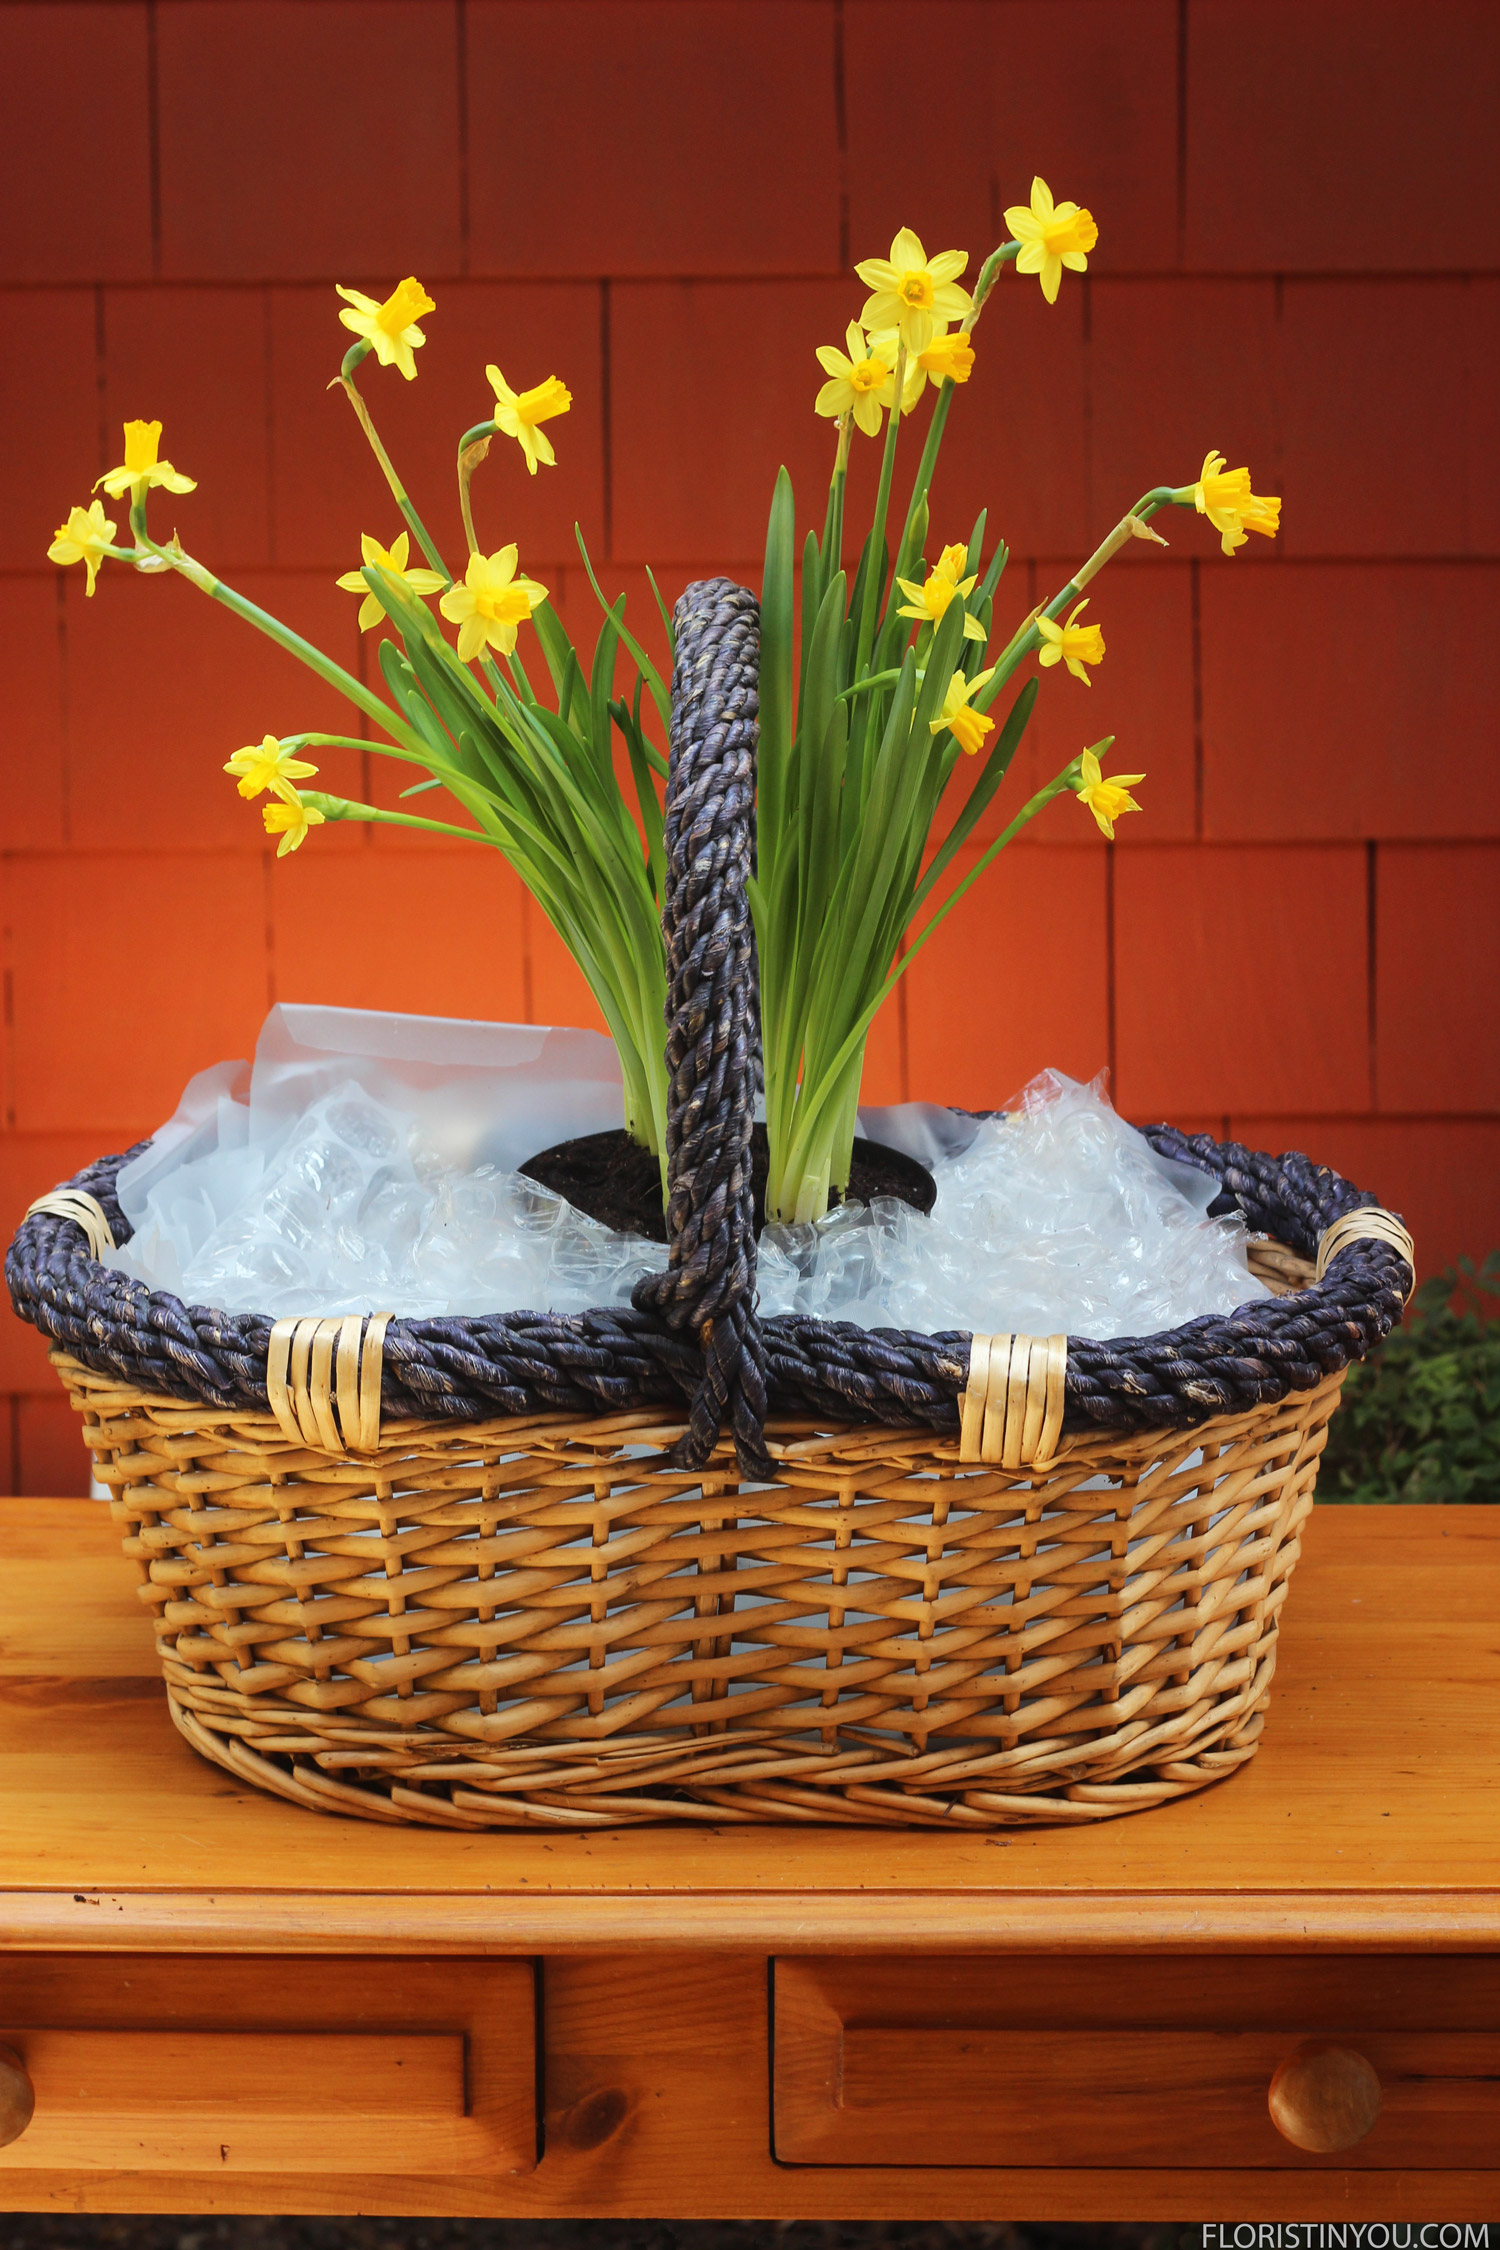 Put 7 sheets bubble wrap in bottom of basket and insert first daffodil pot with flowers on both sides of handle.